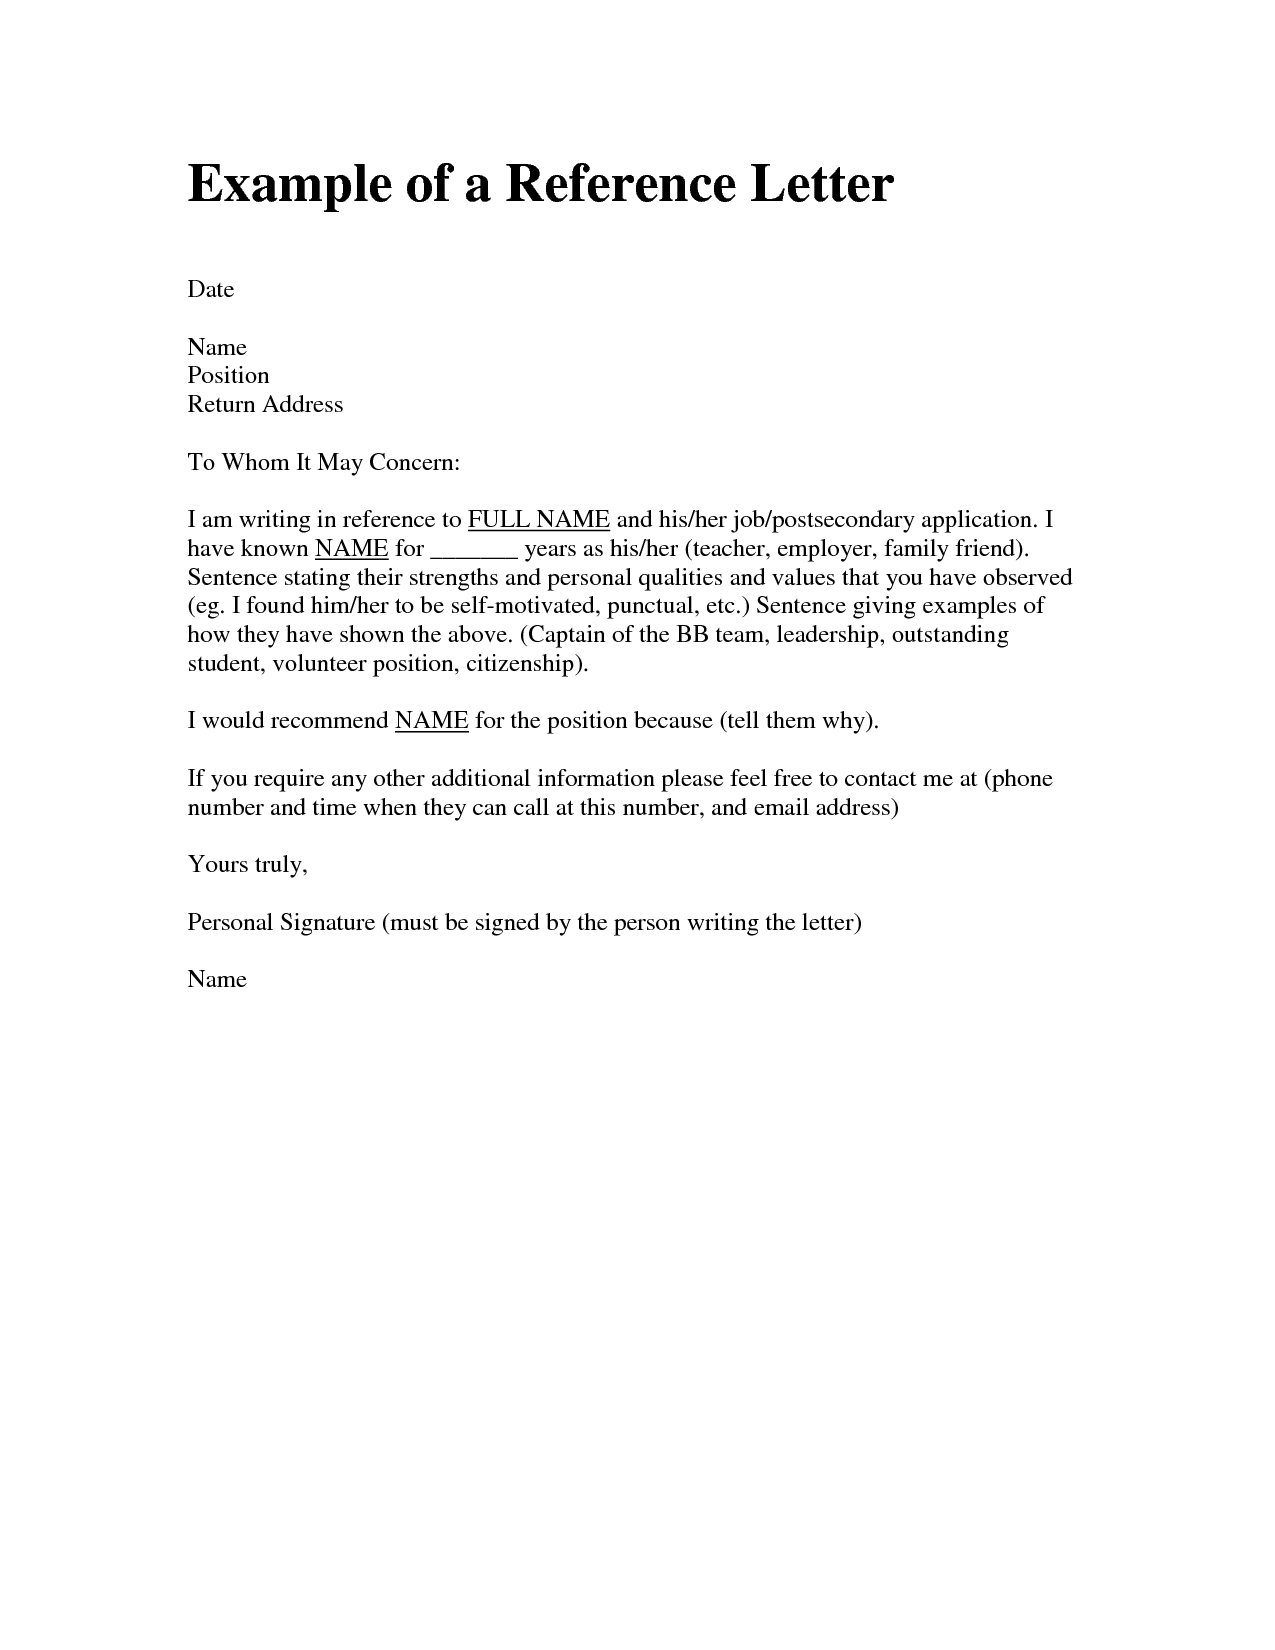 Sample Recommendation Letter For Employment From A Friend  Ecza